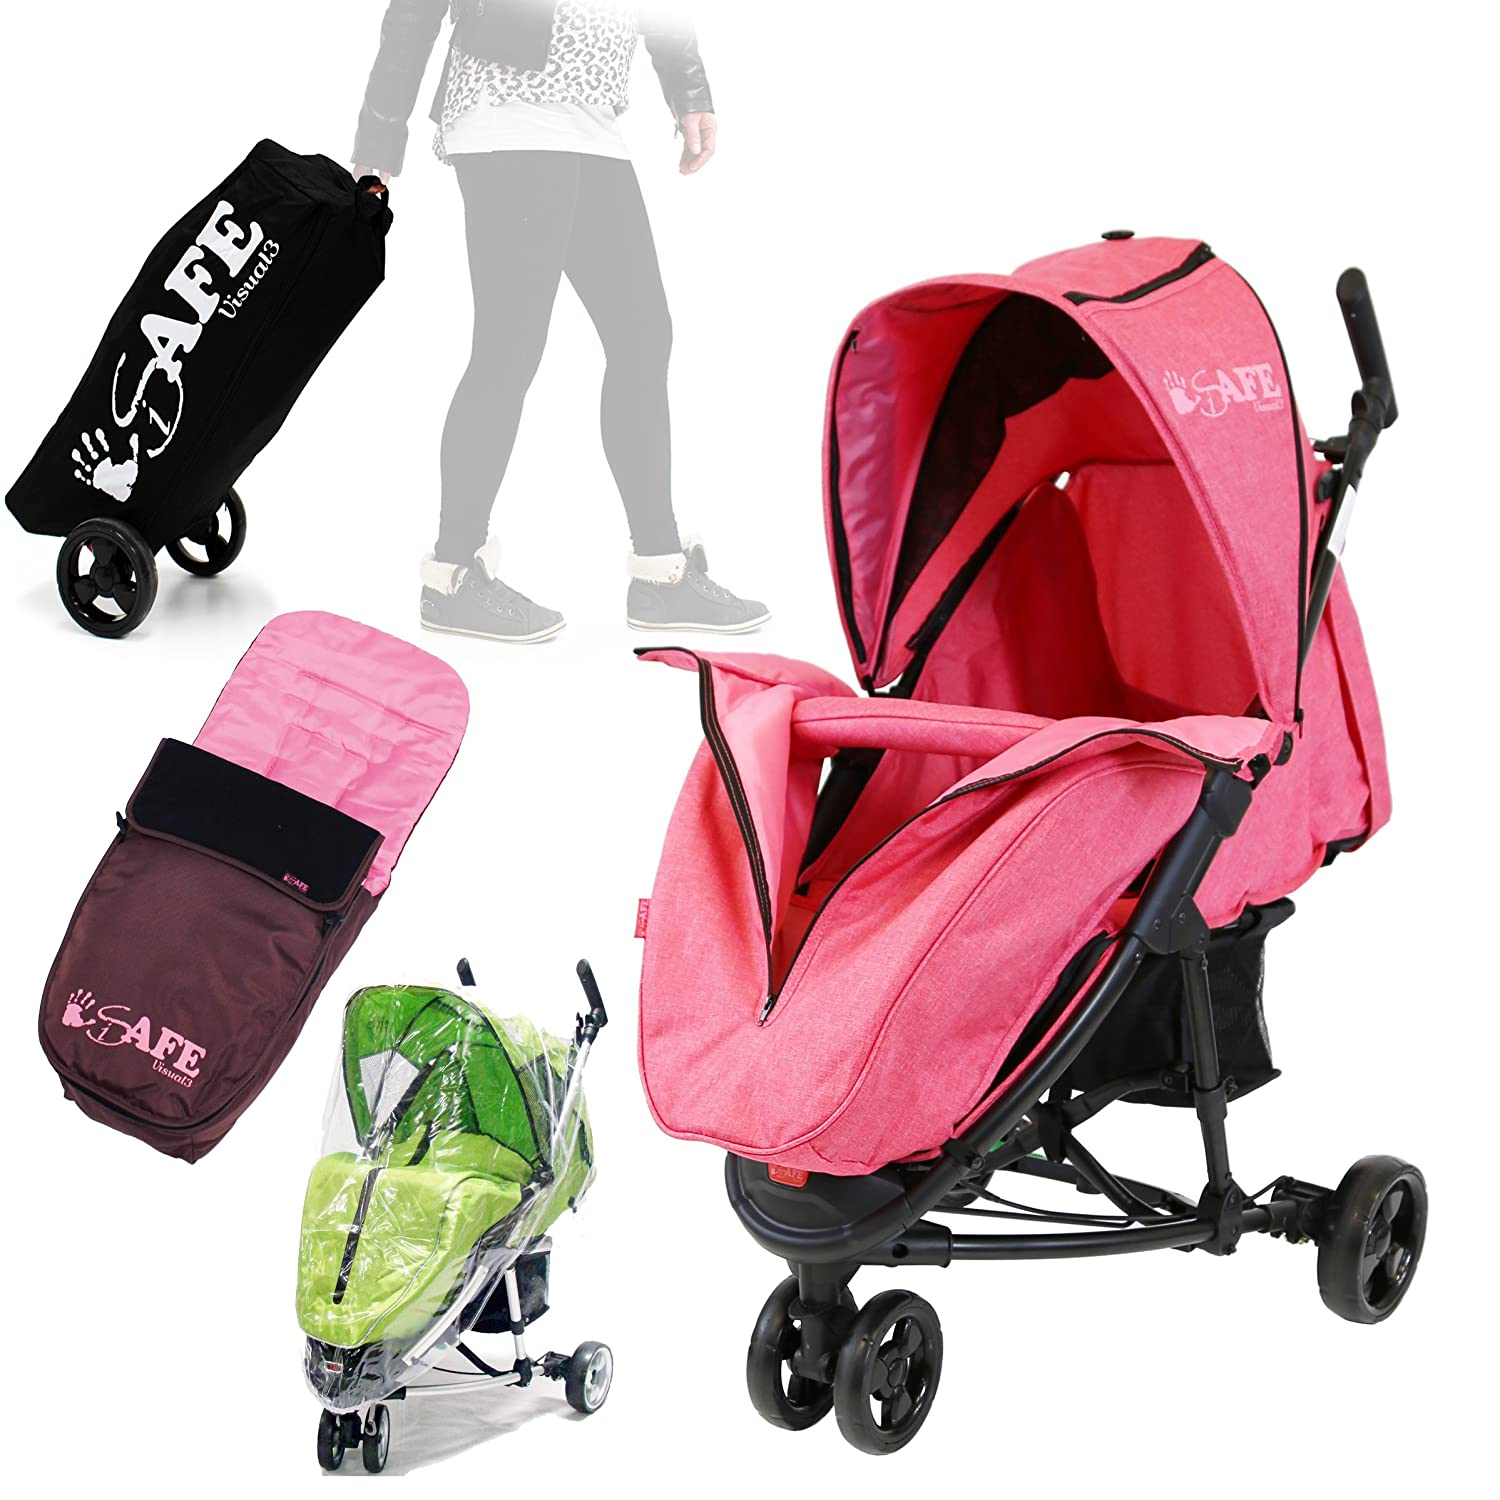 iSafe Visual 3 (2017) -Raspberry Pink Complete With Bumper Bar, Bootcover, Foot Muff, Travel Bag, Rain Cover ISAFEVI3 - BG+fm+trt bag+rc